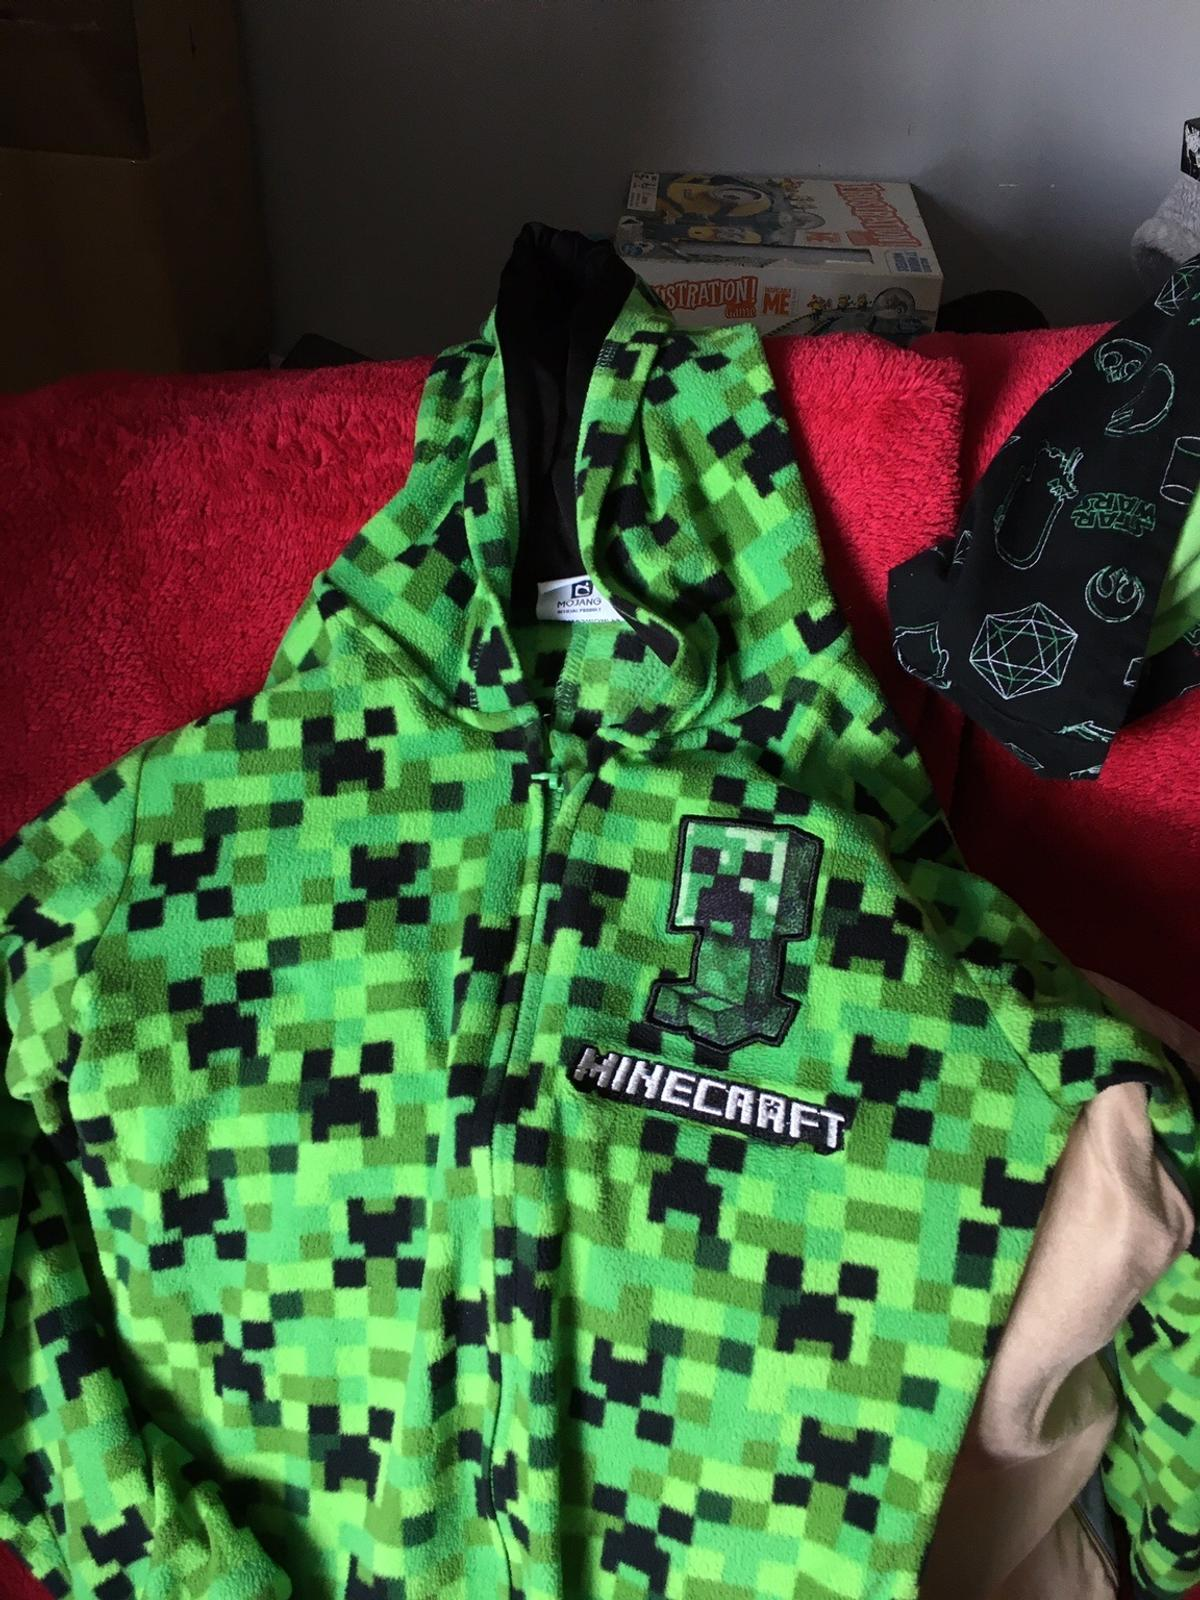 Minecraft onesie 10-11 Star Wars onesie 9-10, zip only goes half way down but can still be worn and zipped up  Can deliver in Leeds at a small fee to cover fuel